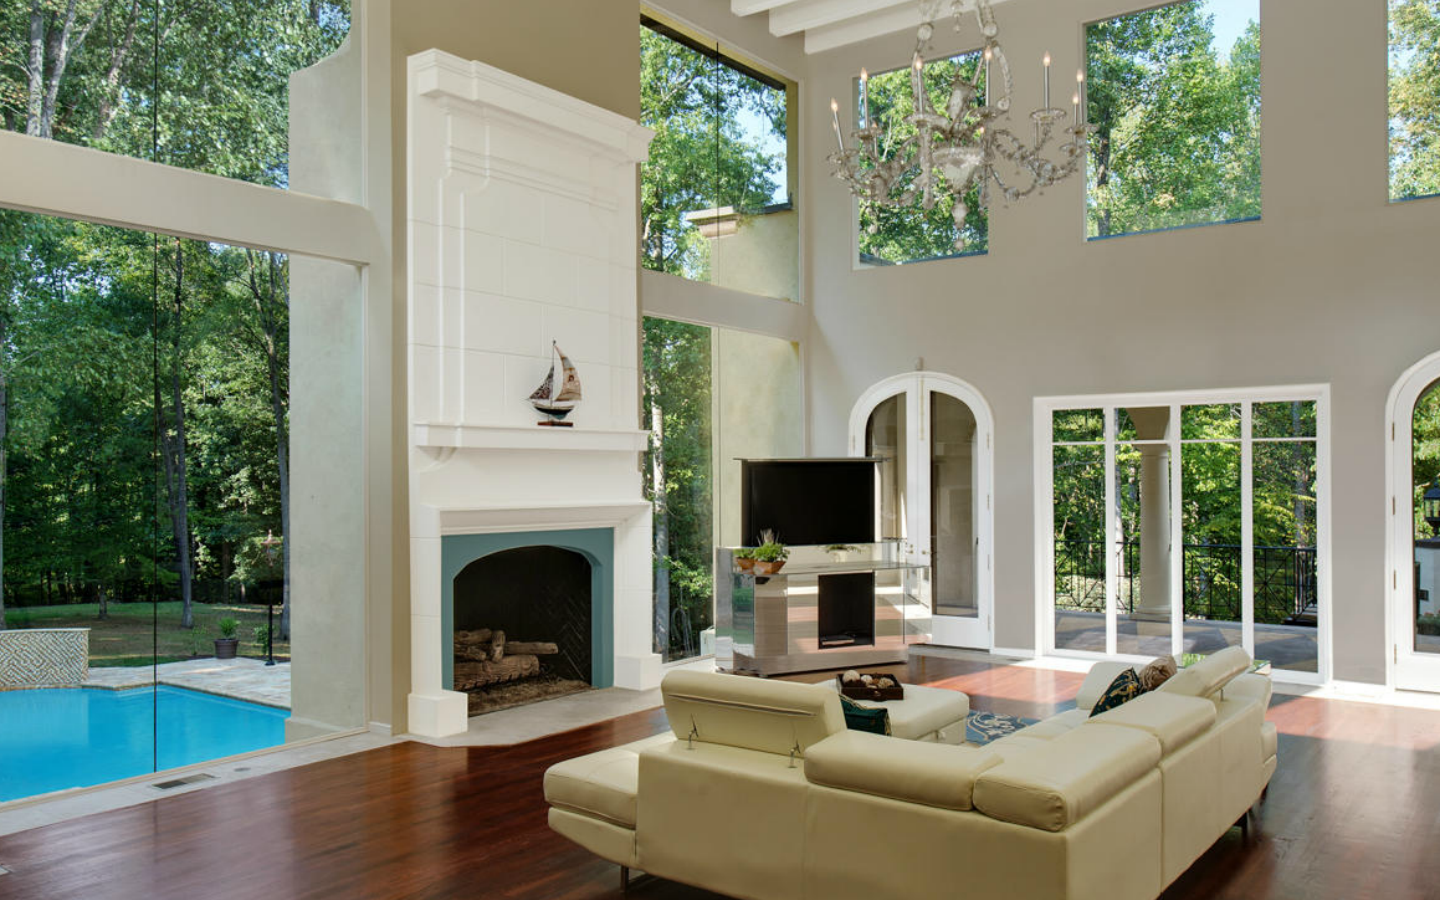 Love the windows and natural light